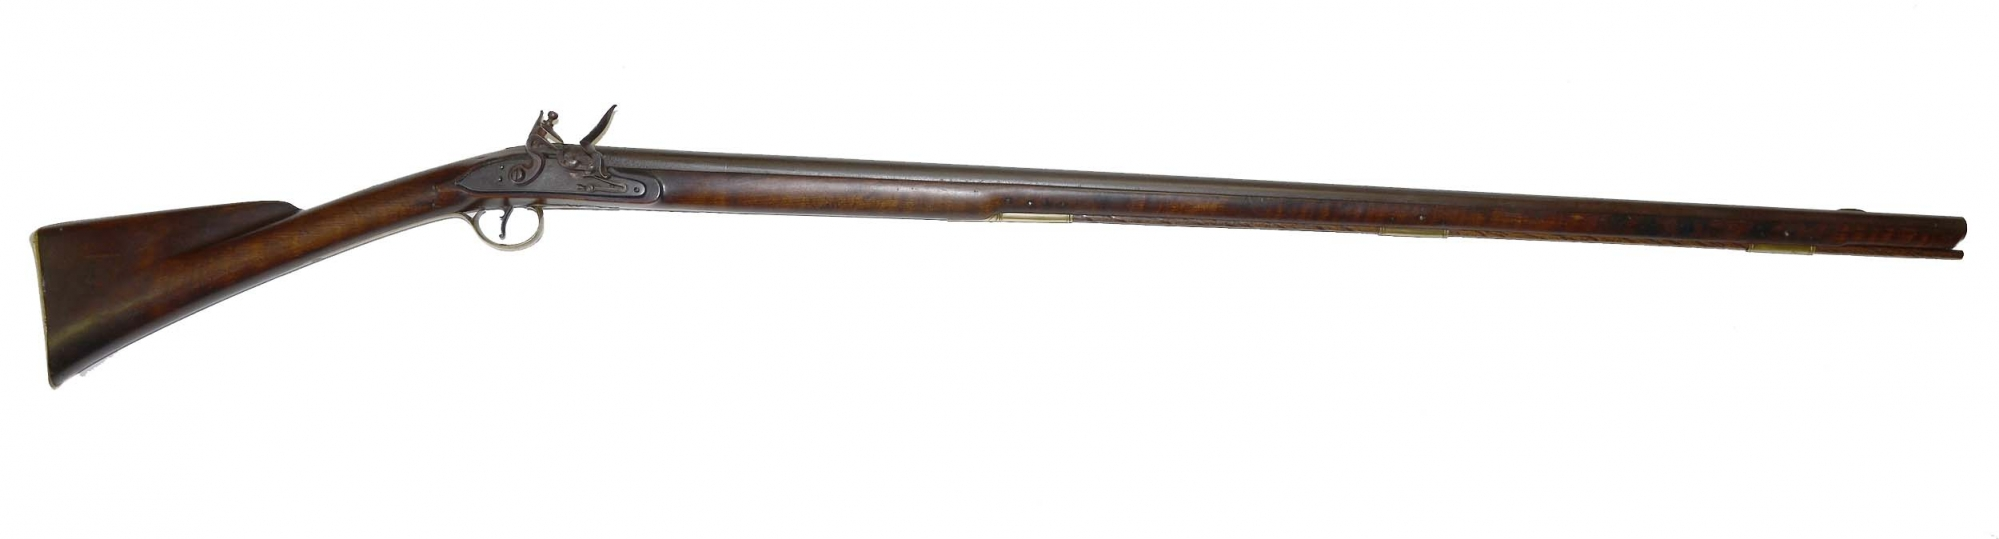 ATTRACTIVE NEW ENGLAND FLINTLOCK FOWLER ATTRIBUTED TO WELCOME MATHEWSON OF RHODE ISLAND